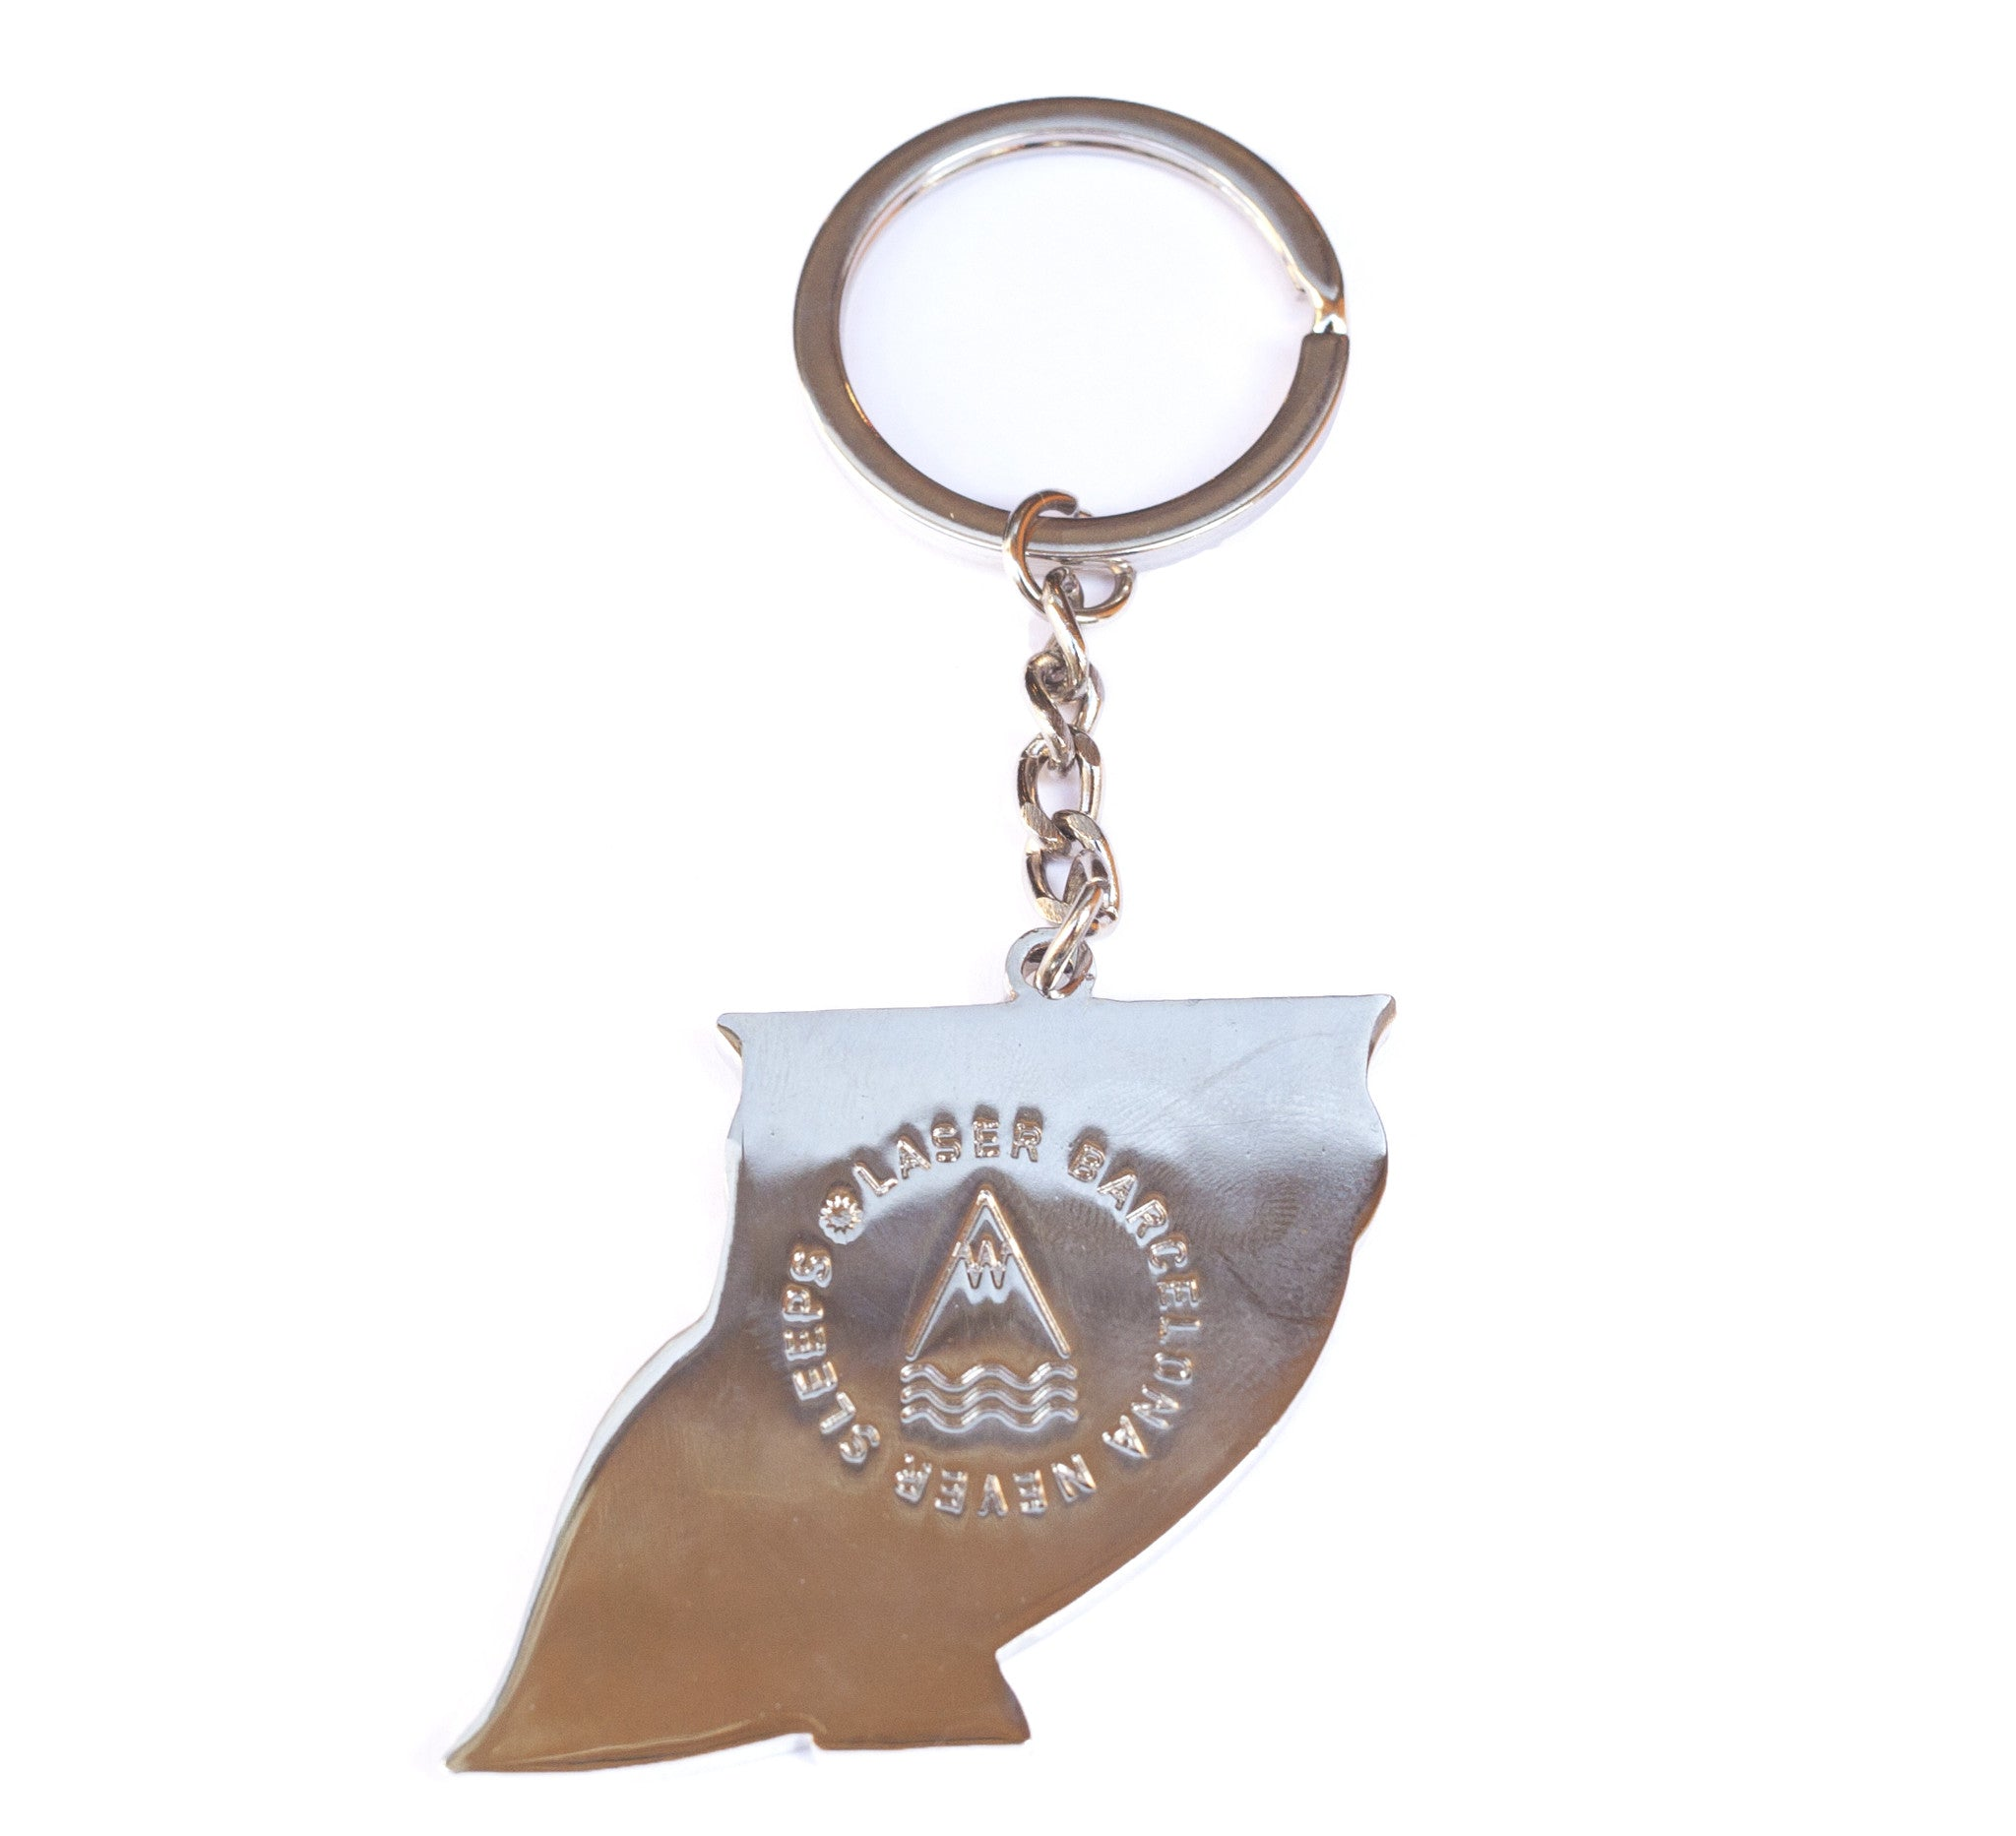 WE NEVER SLEEP KEYCHAIN